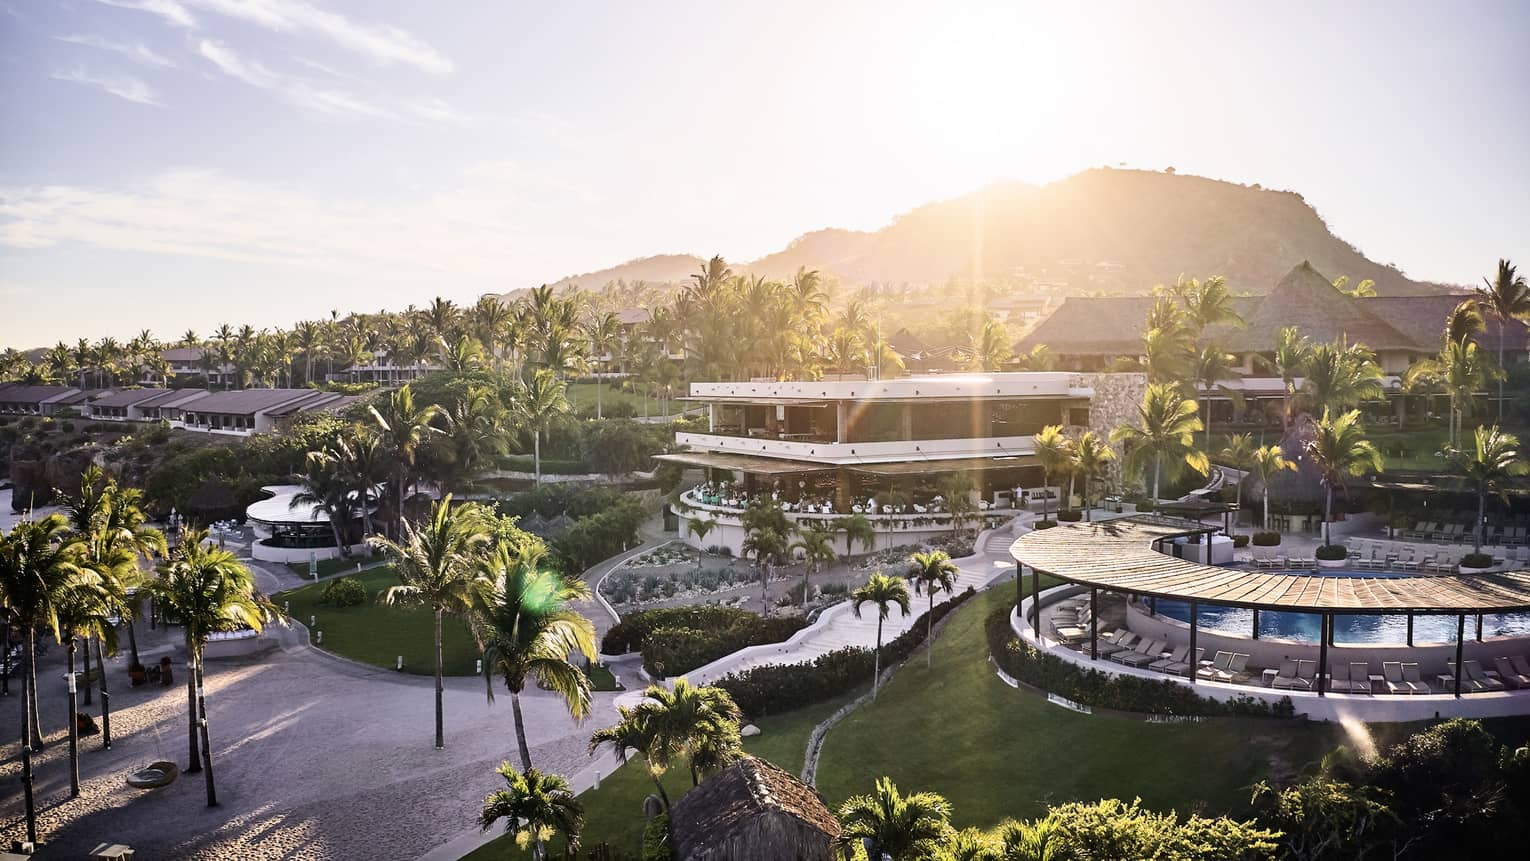 Sun sets over sweeping Four Seasons Resort Punta Mita, mountains